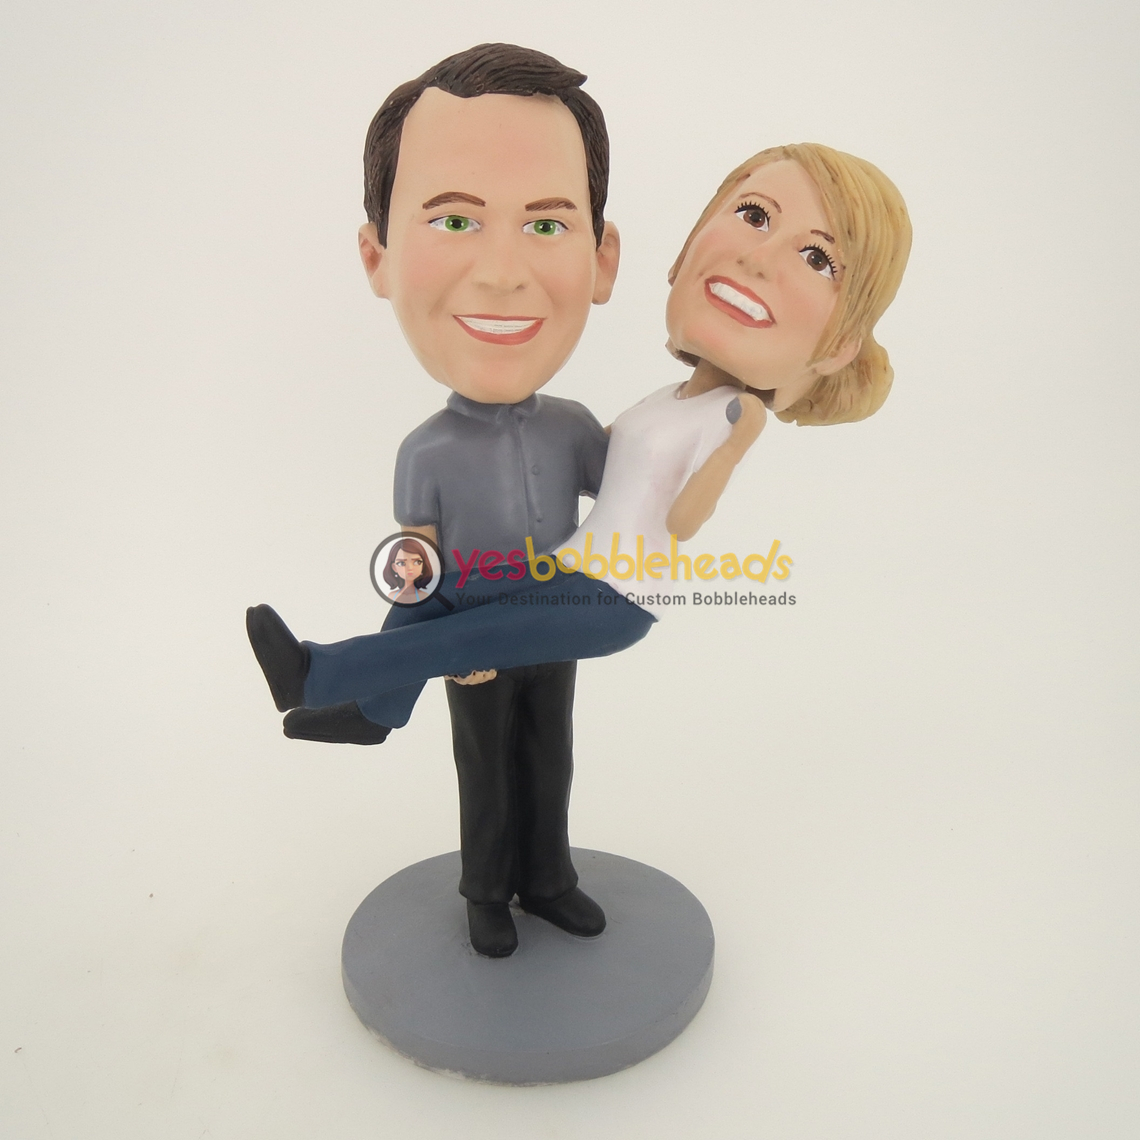 Picture of Custom Bobblehead Doll: Man Holds Woman